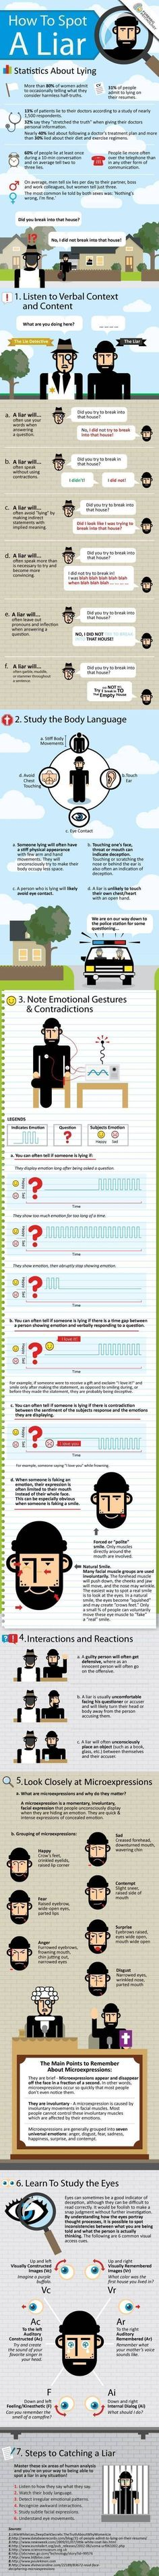 Psychology infographic and charts telltale-signs-someone-is-lying I am one to pay attention to body language and … Infographic Description telltale-signs-someone-is-lying I am one to pay attention to body language and I often know when Im being lied to…I just don't... - #Psychologyinfographics #signlanguageinfographic